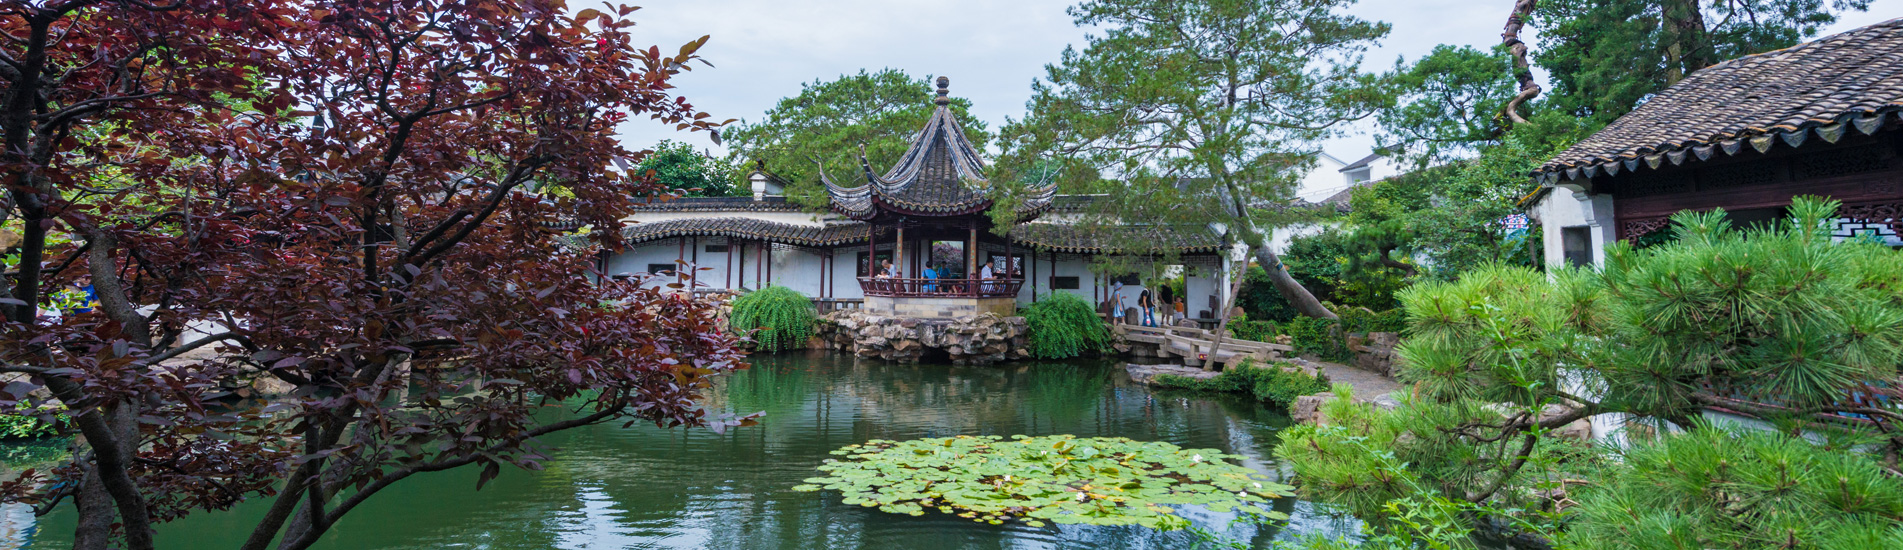 Chinese garden in Suzhou